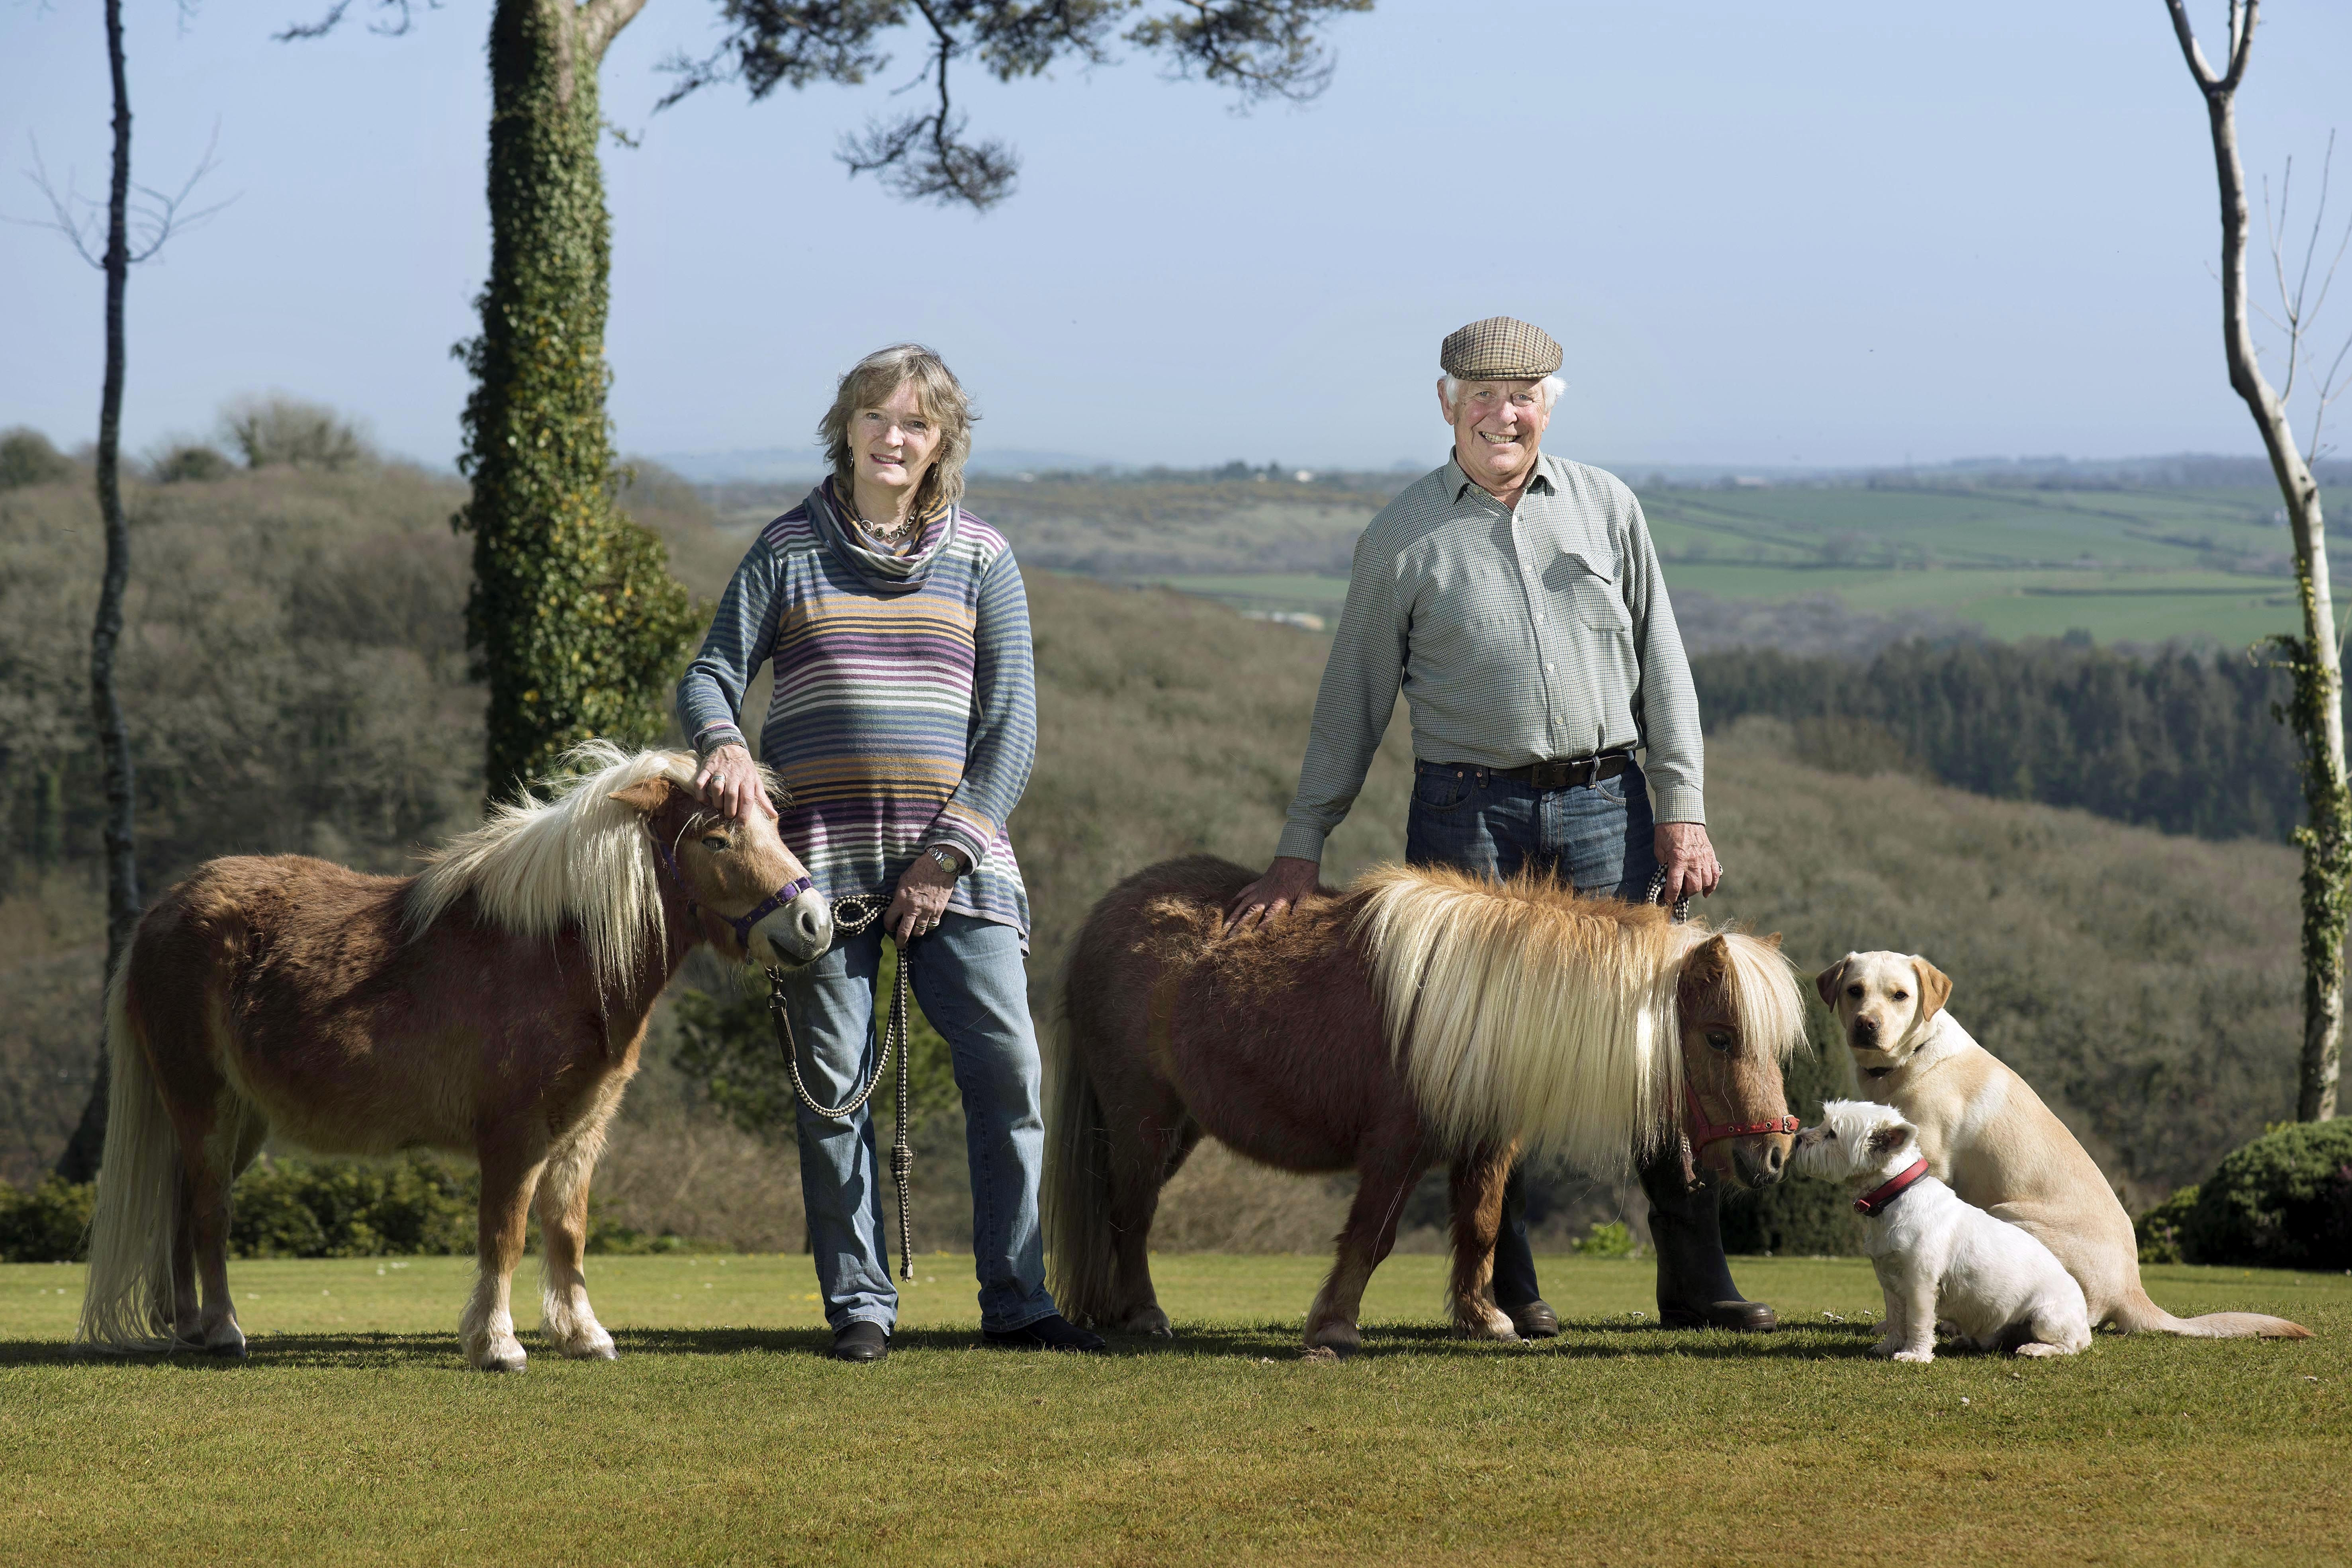 Robin and Louella with horses and dogs